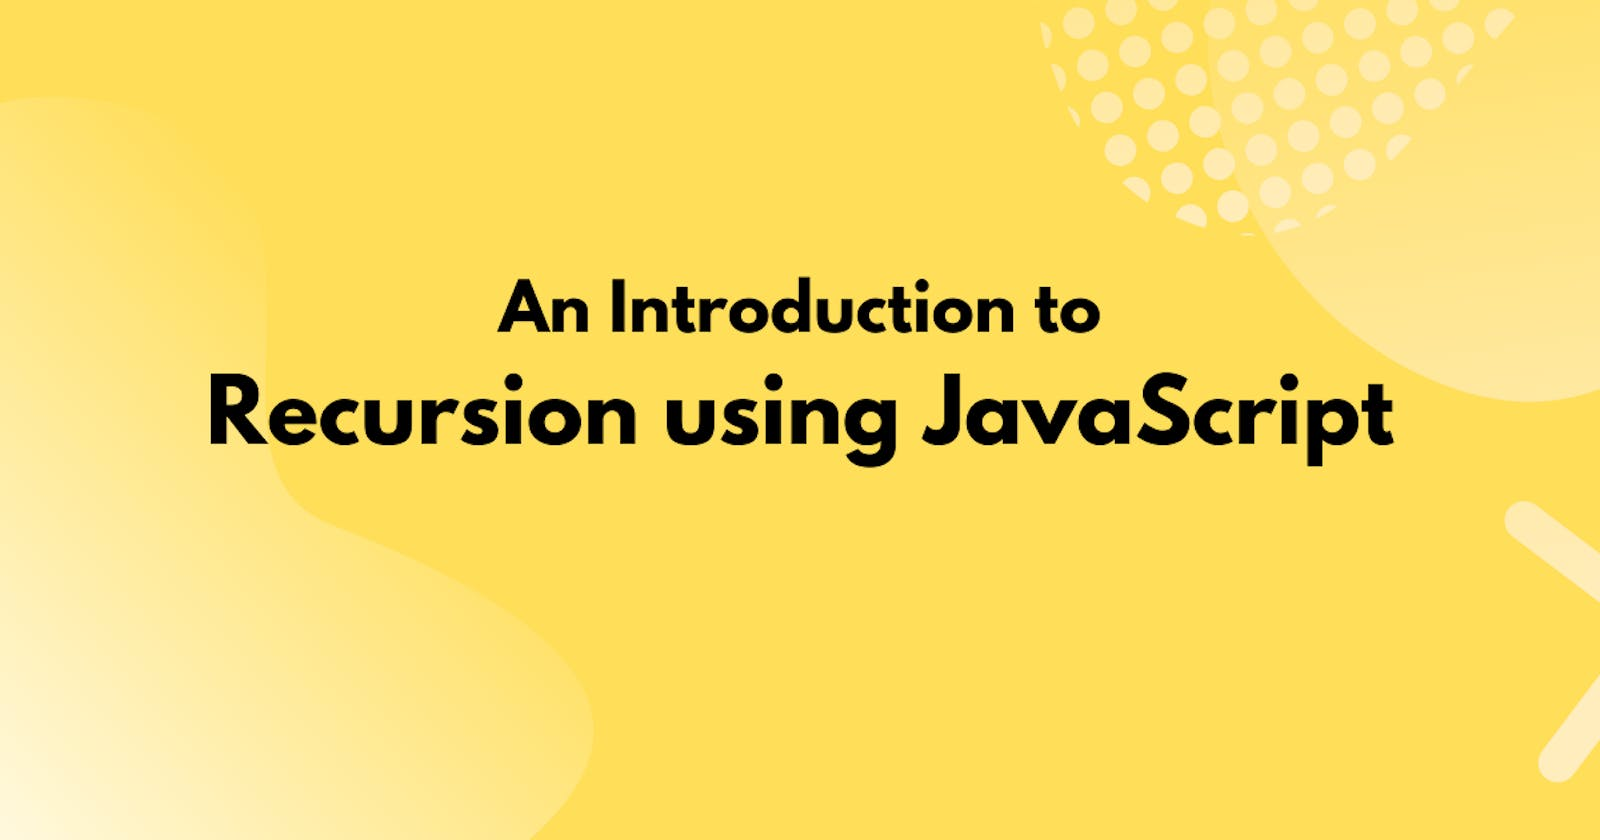 An Introduction to Recursion using JavaScript